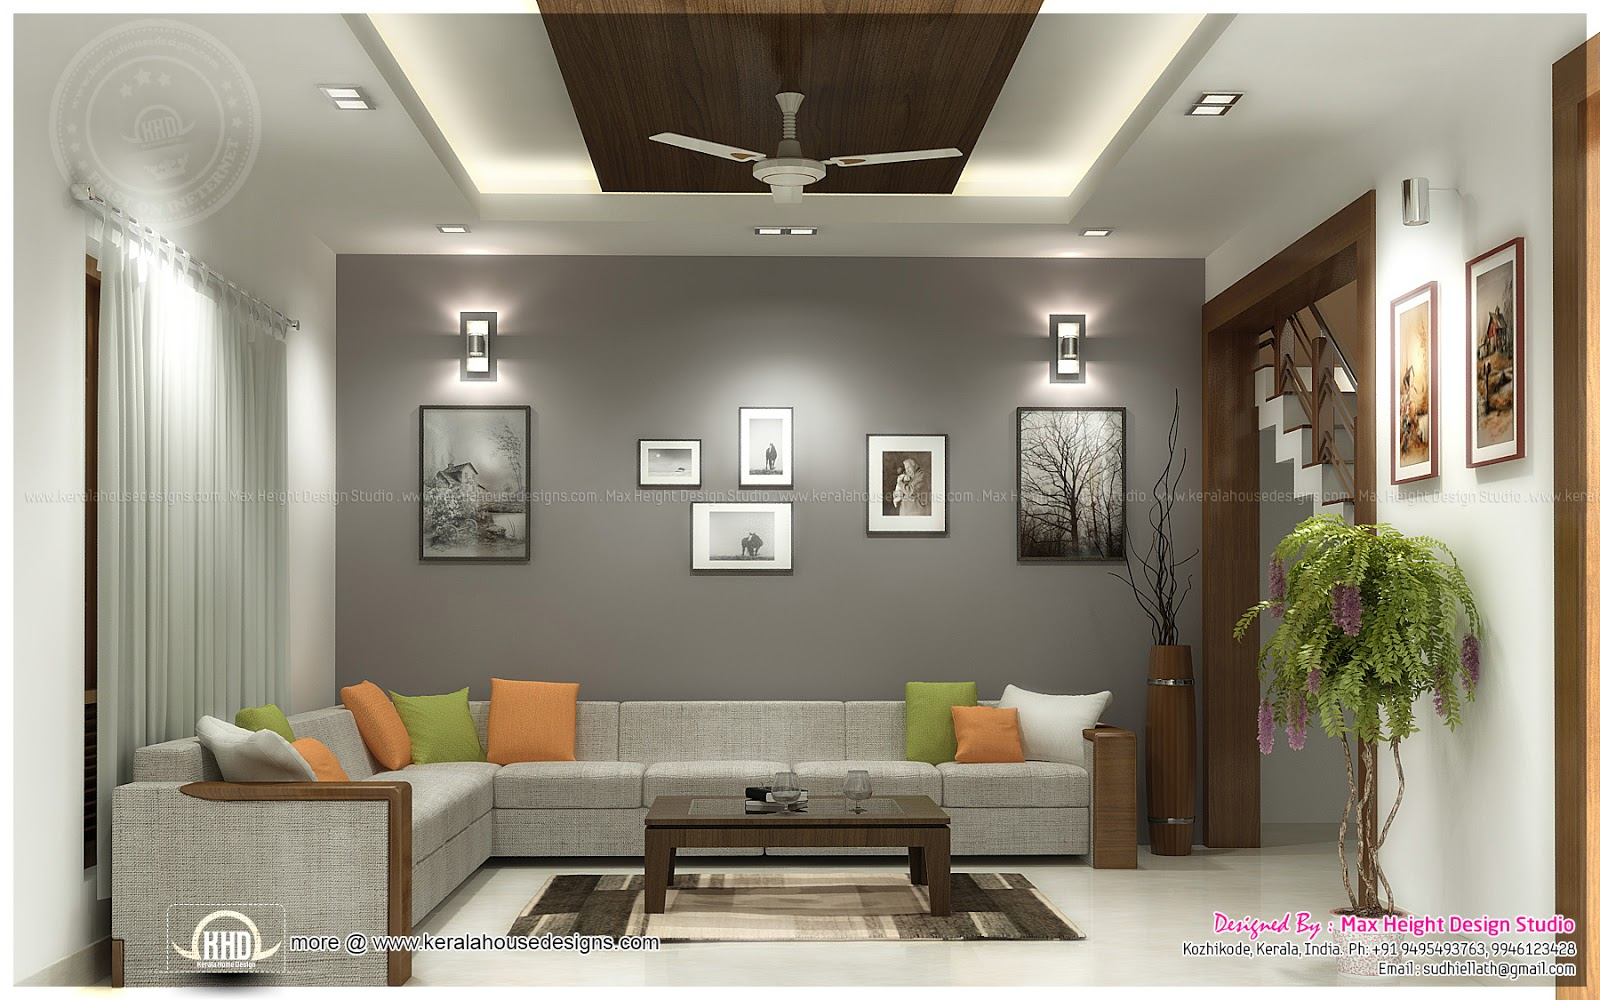 Beautiful interior ideas for home kerala home design and for House design interior decorating